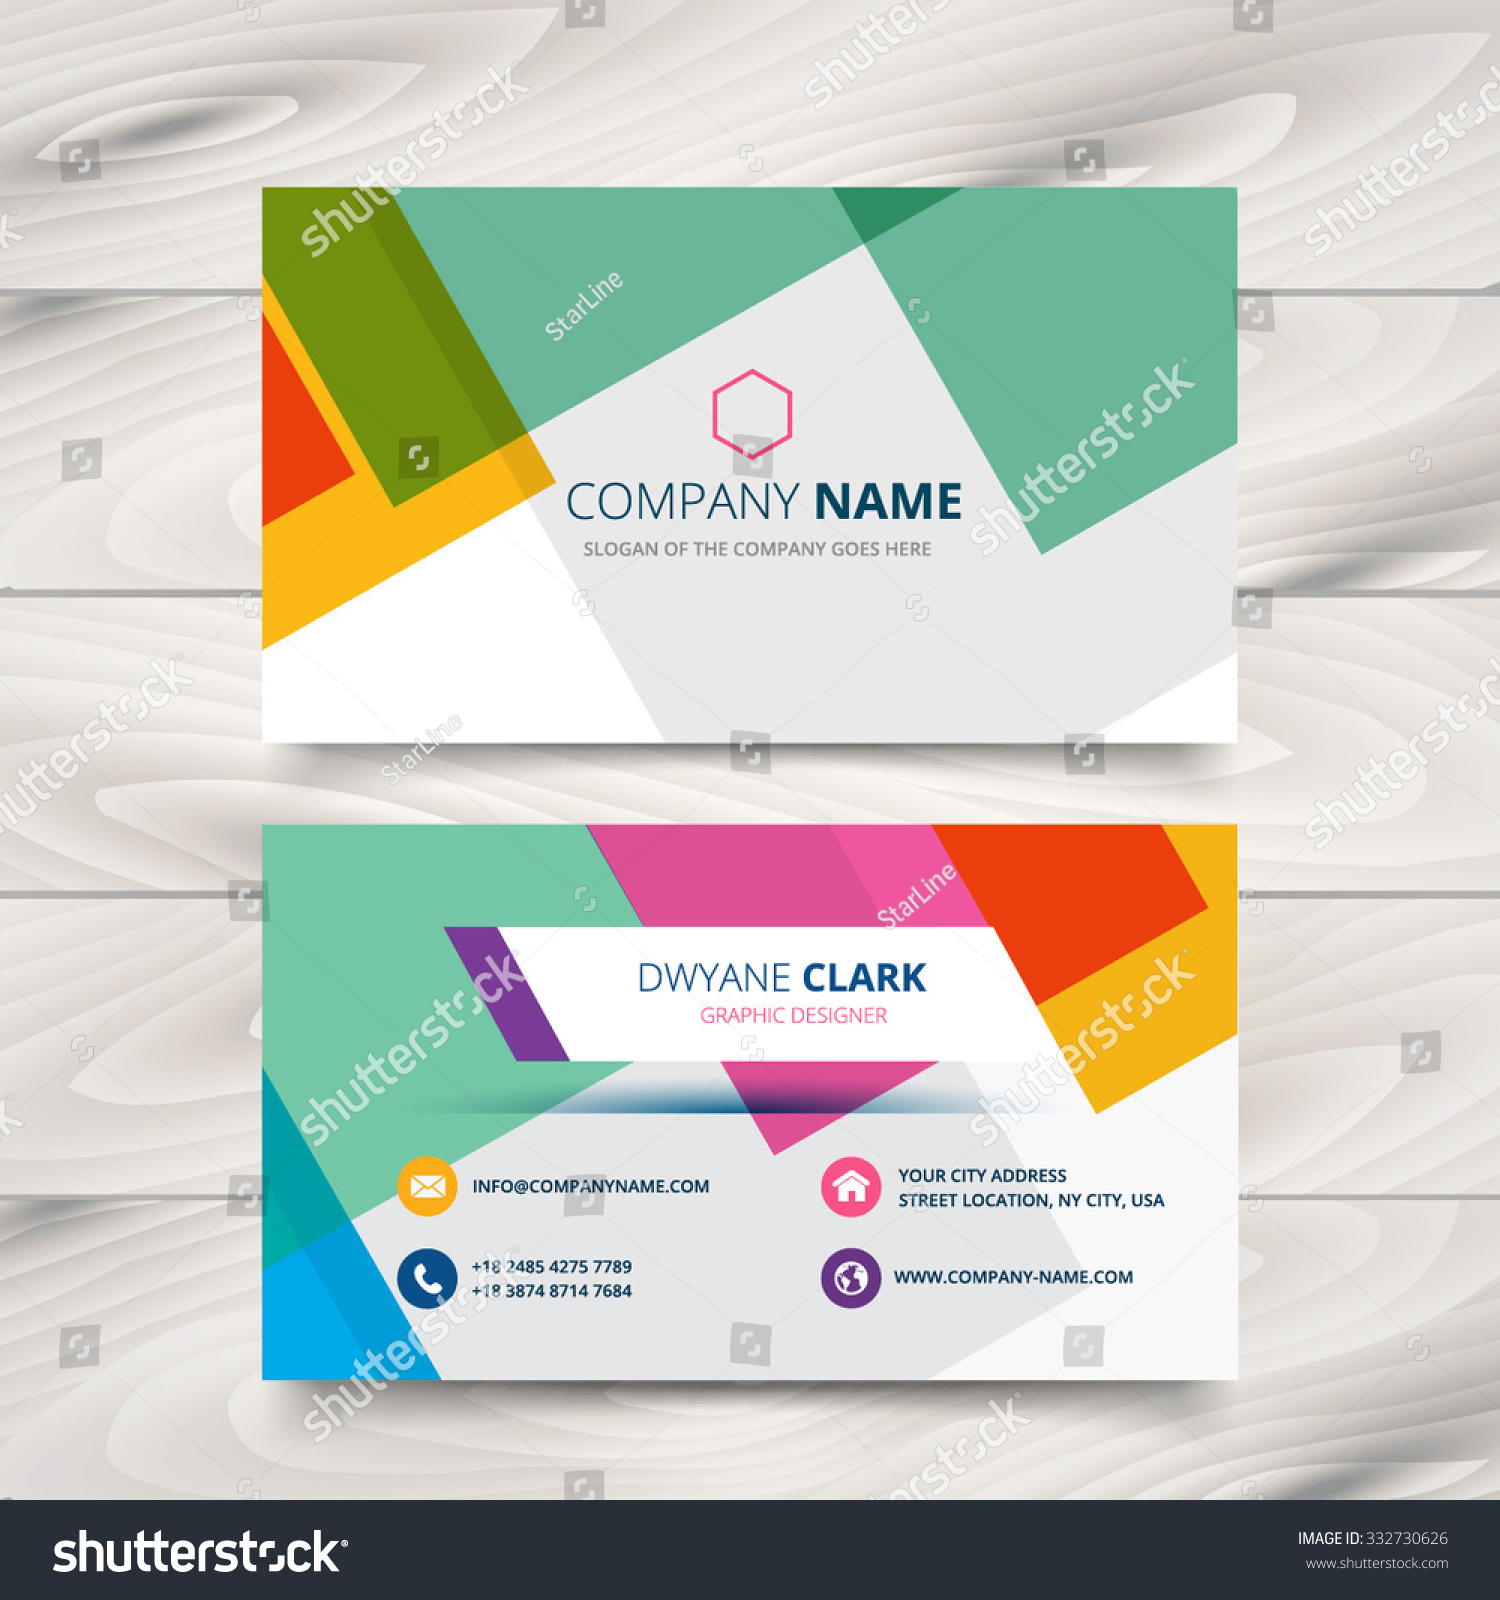 modern graphic design business card designs - Roberto.mattni.co